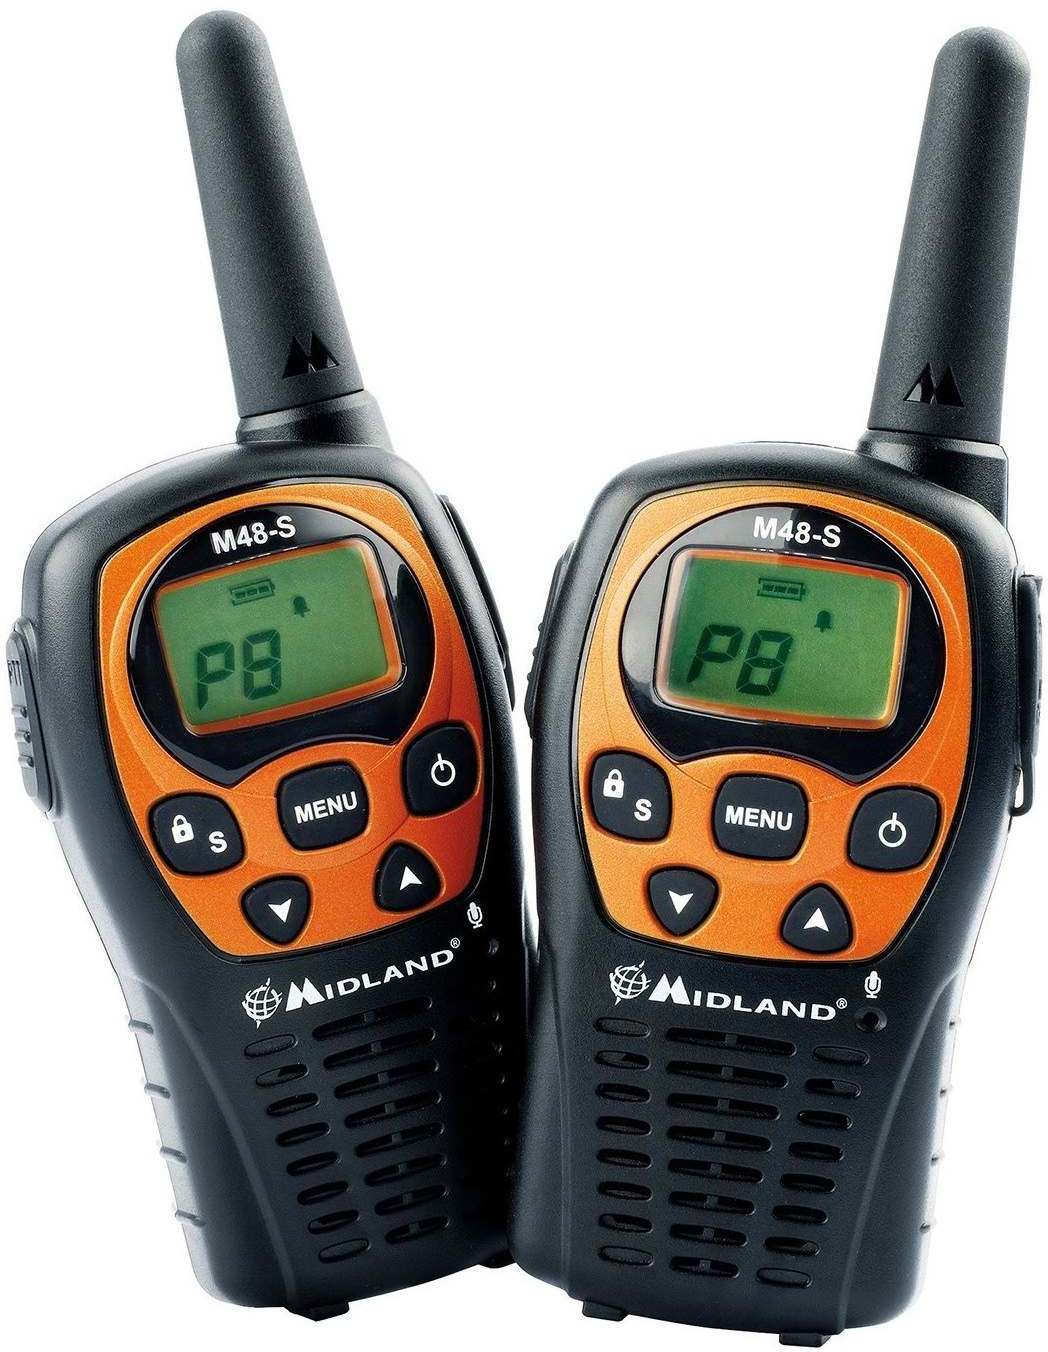 midland pmr m48 s test walkie talkie. Black Bedroom Furniture Sets. Home Design Ideas